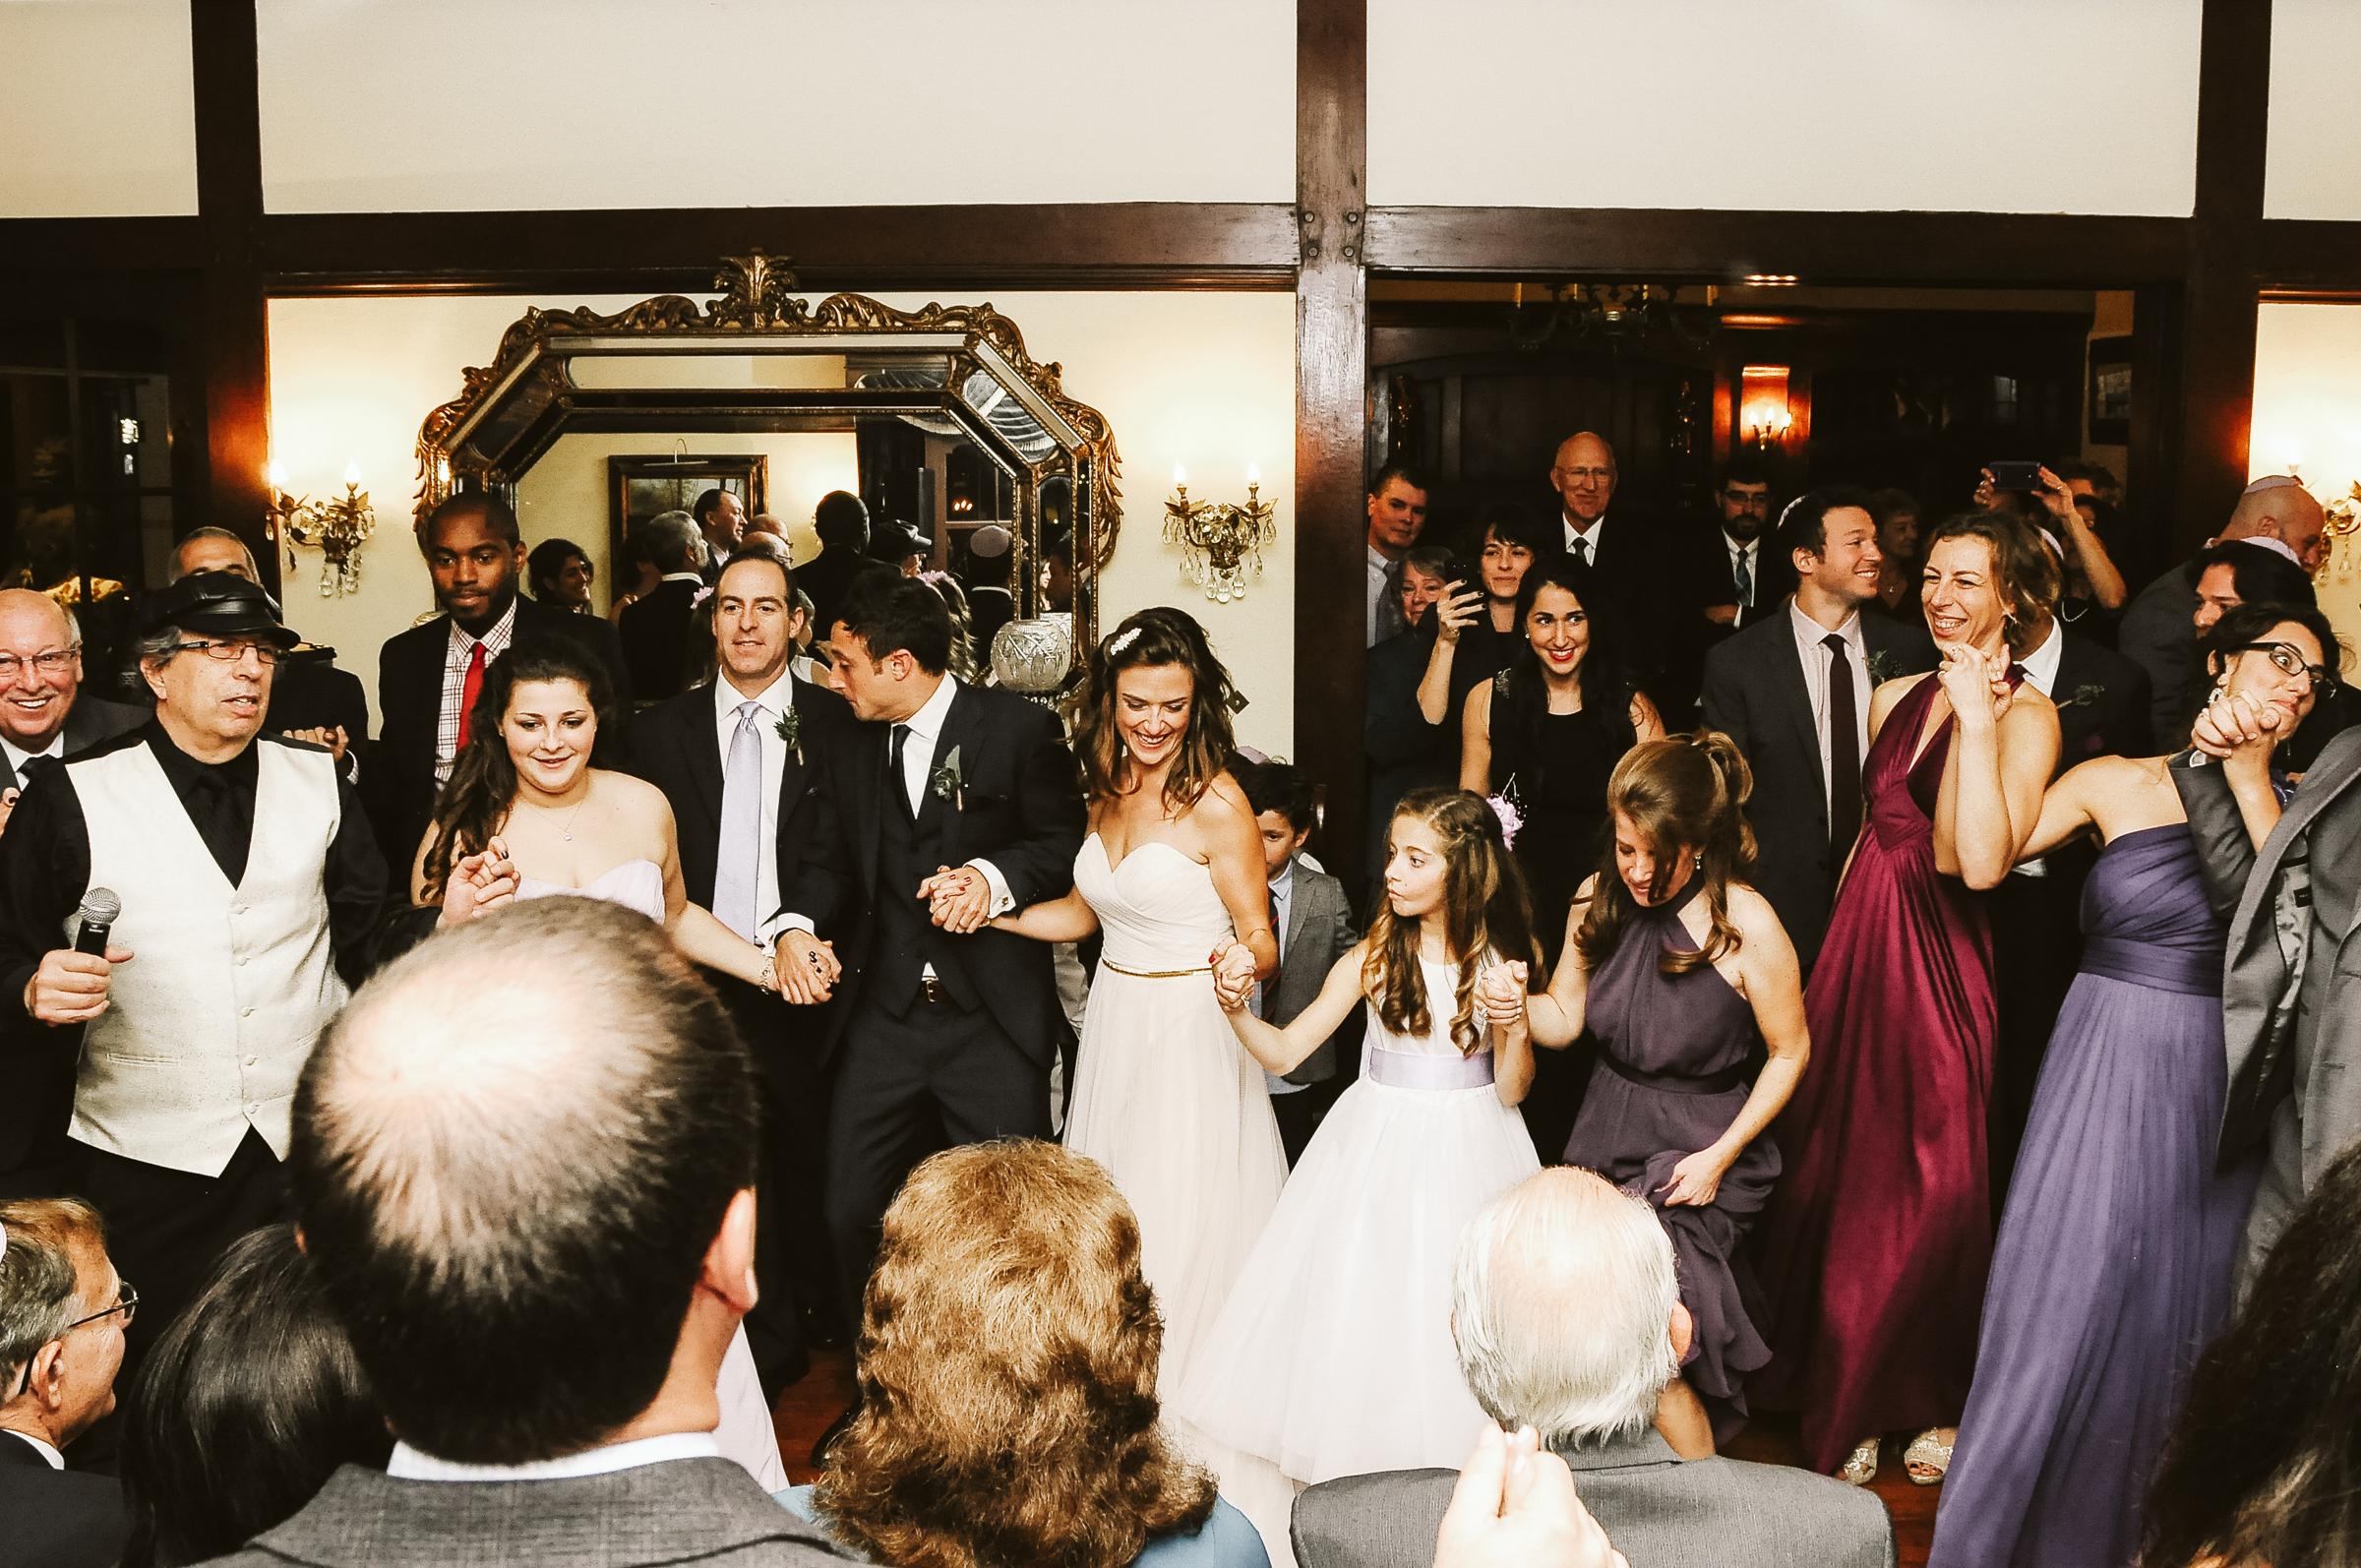 Jen and Drew's Wedding Edited 2019 web-73.jpg